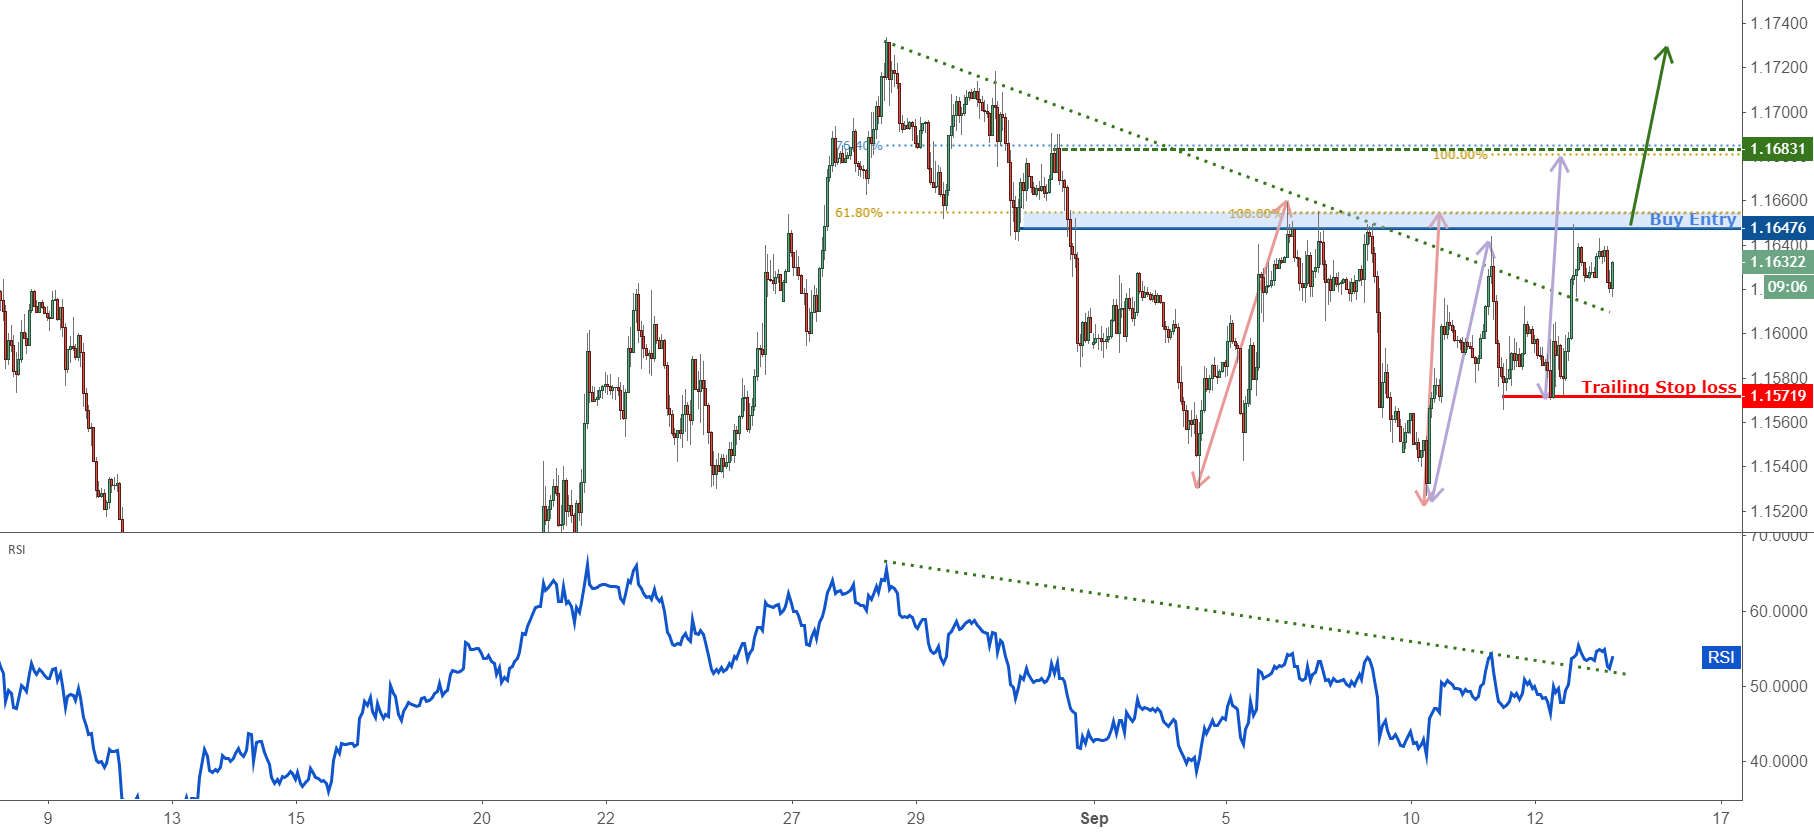 Possible trend shift in EURUSD – going long